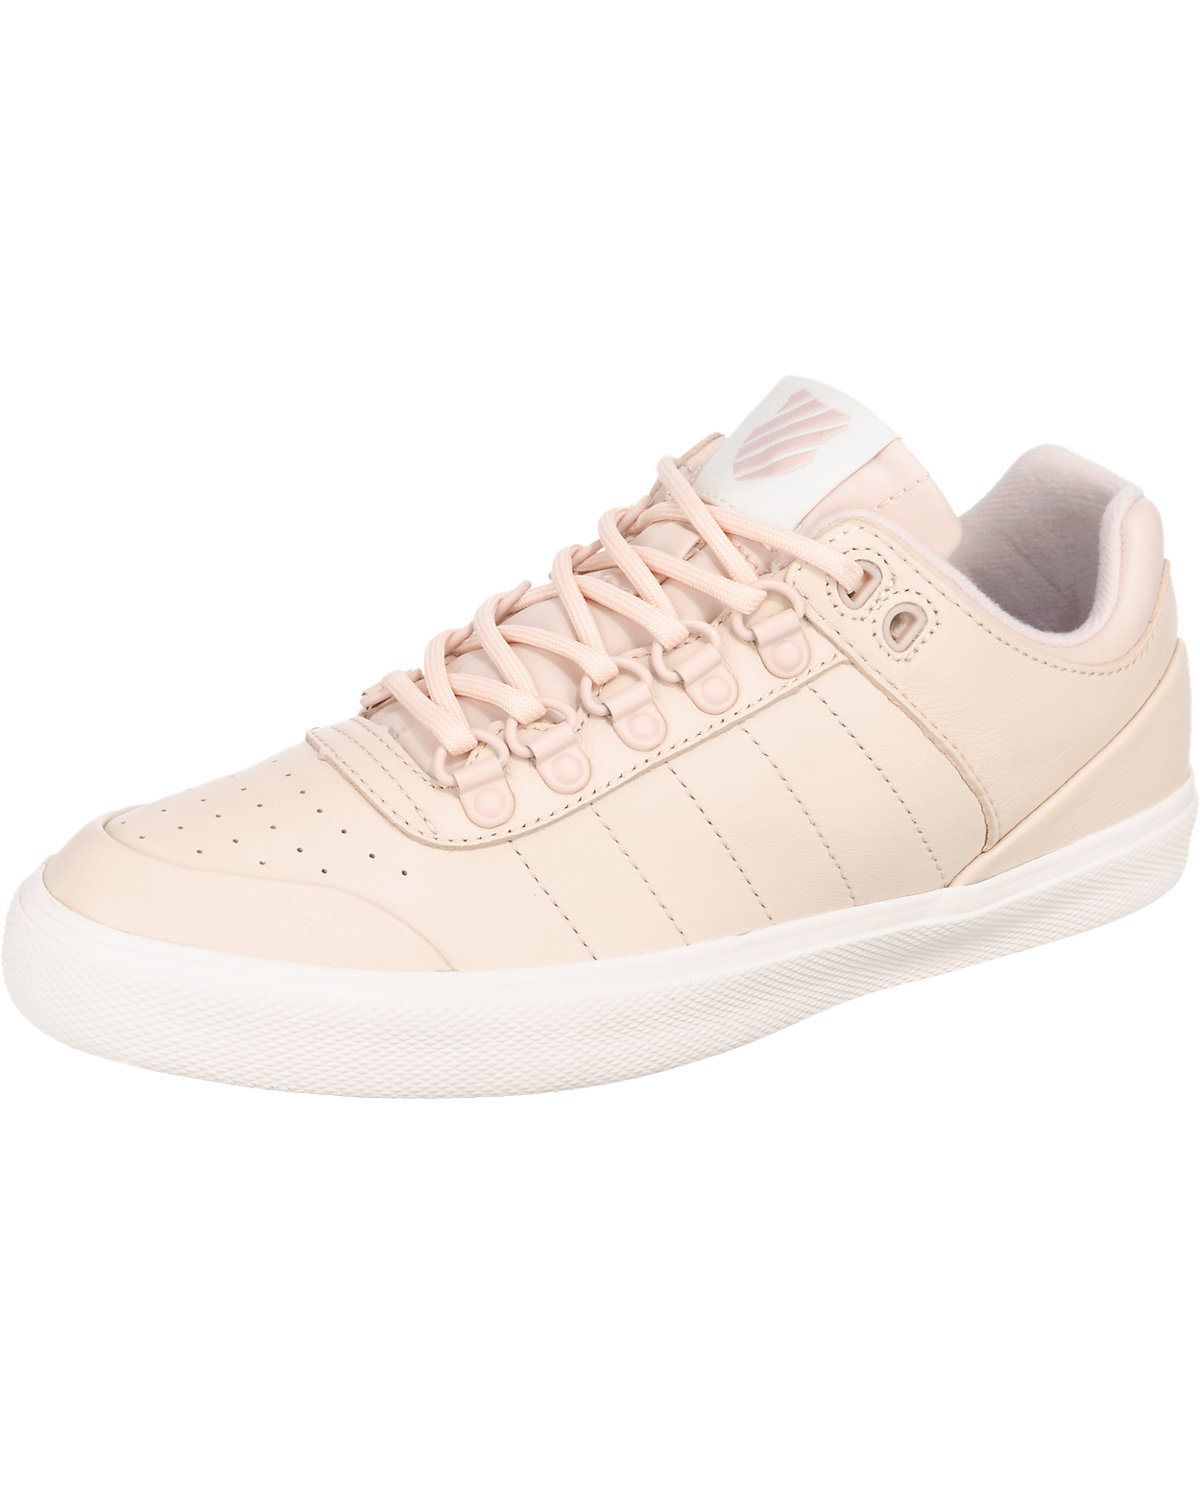 K-SWISS, K-SWISS Gstaad Neu Sleek Sneakers, rosa